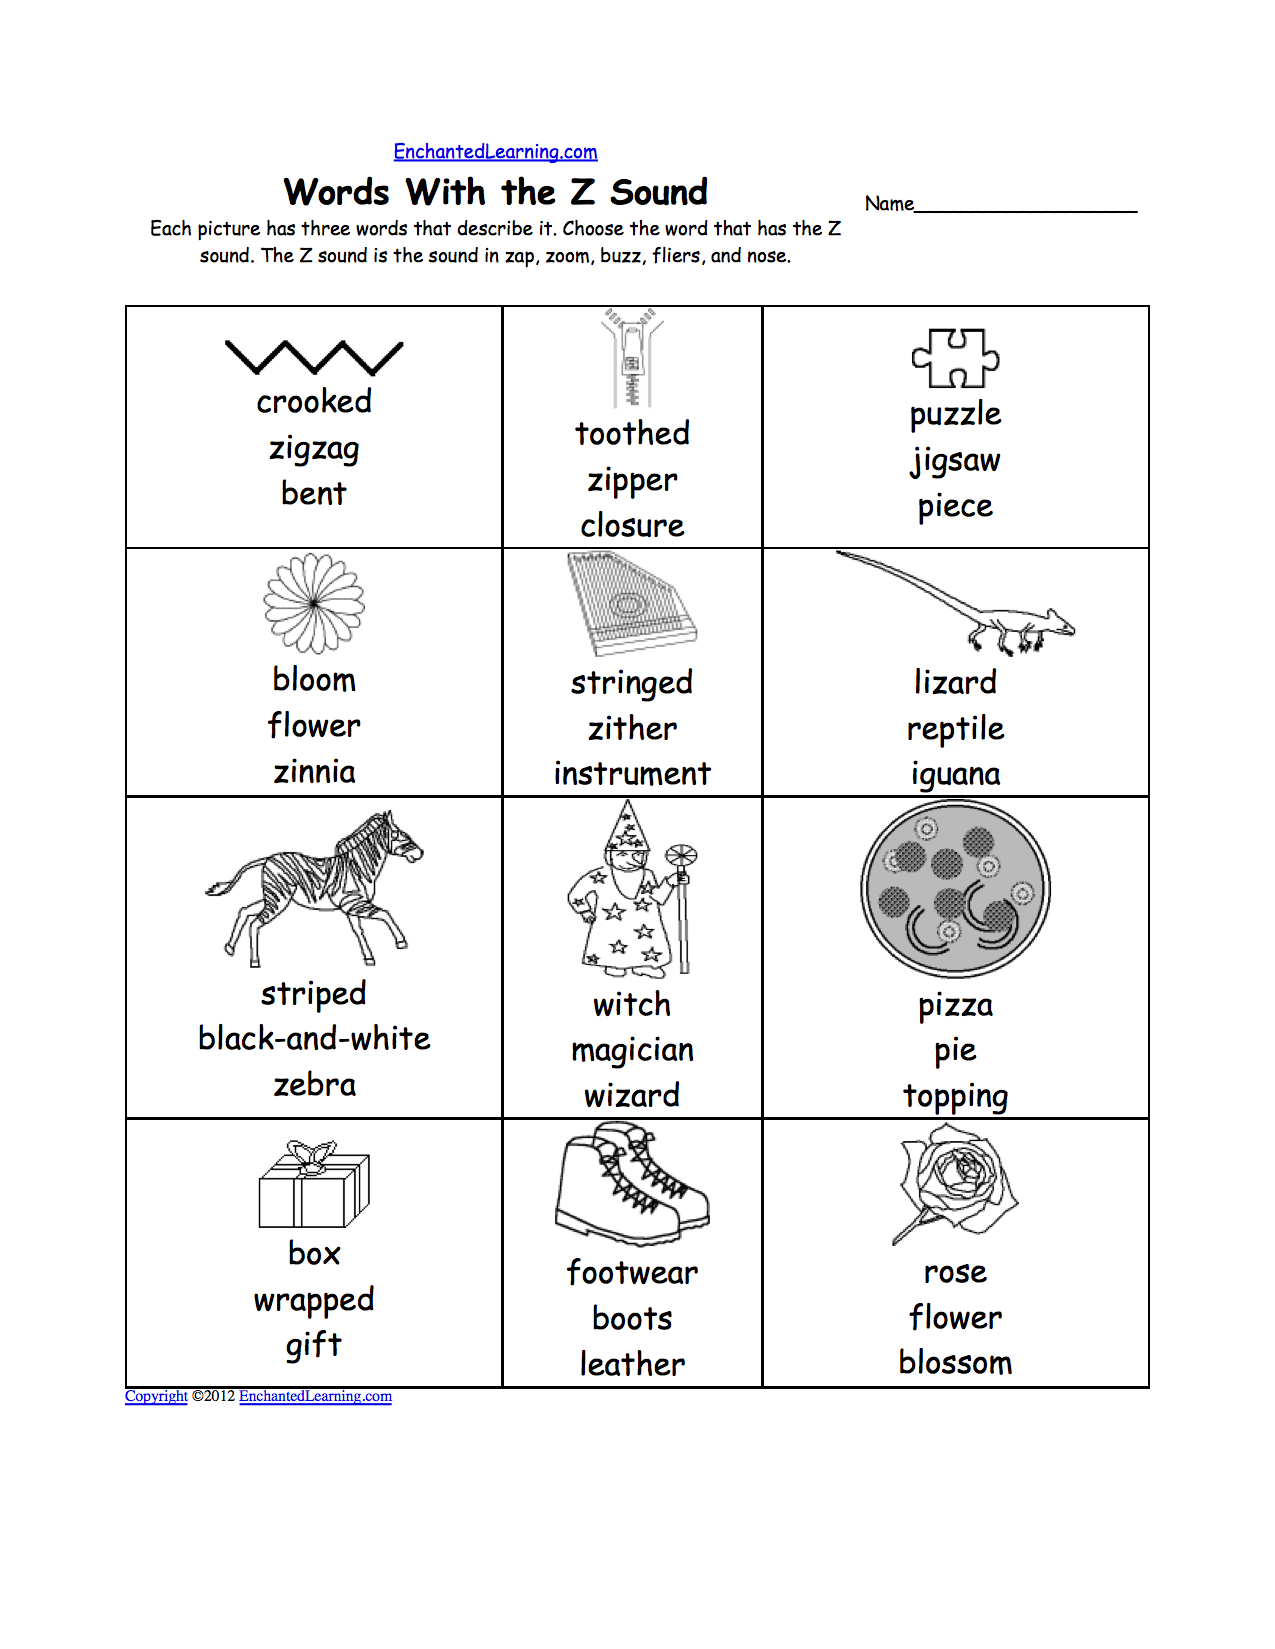 Proatmealus  Remarkable Phonics Worksheets Multiple Choice Worksheets To Print  With Luxury Phonics Worksheets Multiple Choice Worksheets To Print  Enchantedlearningcom With Charming Degree Worksheet Also Writing Variable Expressions Worksheets In Addition Word Problems With Integers Worksheet And Free Math Worksheets For Rd Graders As Well As Multiplying Decimals Word Problems Worksheet Additionally Y As A Vowel Worksheet From Enchantedlearningcom With Proatmealus  Luxury Phonics Worksheets Multiple Choice Worksheets To Print  With Charming Phonics Worksheets Multiple Choice Worksheets To Print  Enchantedlearningcom And Remarkable Degree Worksheet Also Writing Variable Expressions Worksheets In Addition Word Problems With Integers Worksheet From Enchantedlearningcom